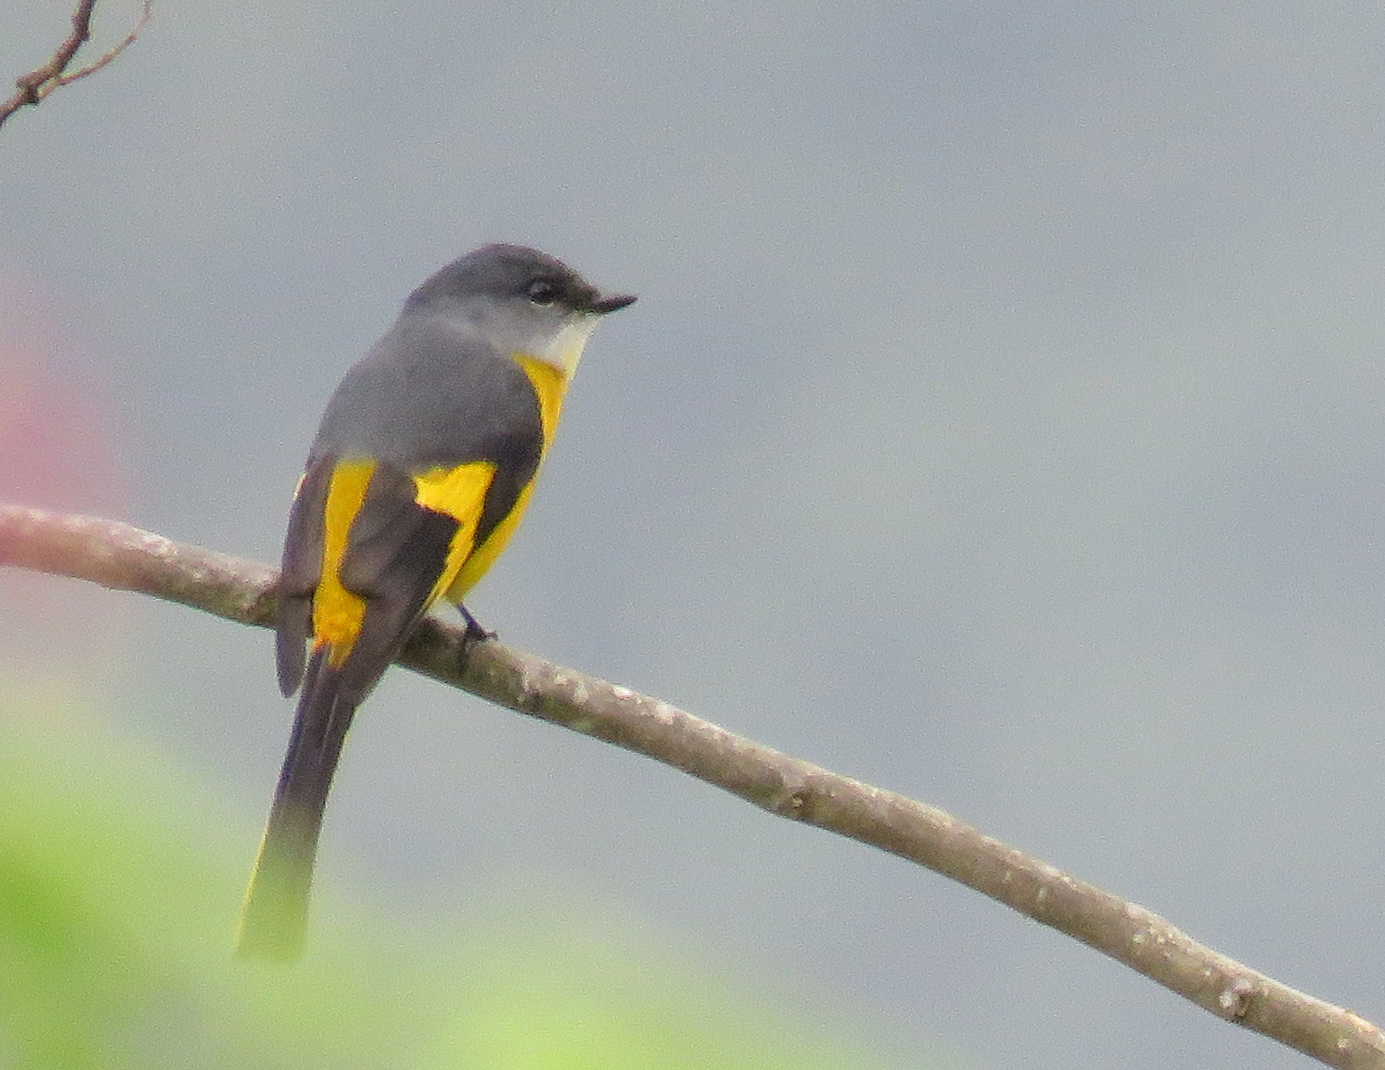 Grey-chinned Minivet. Photo by Randy Weisser.